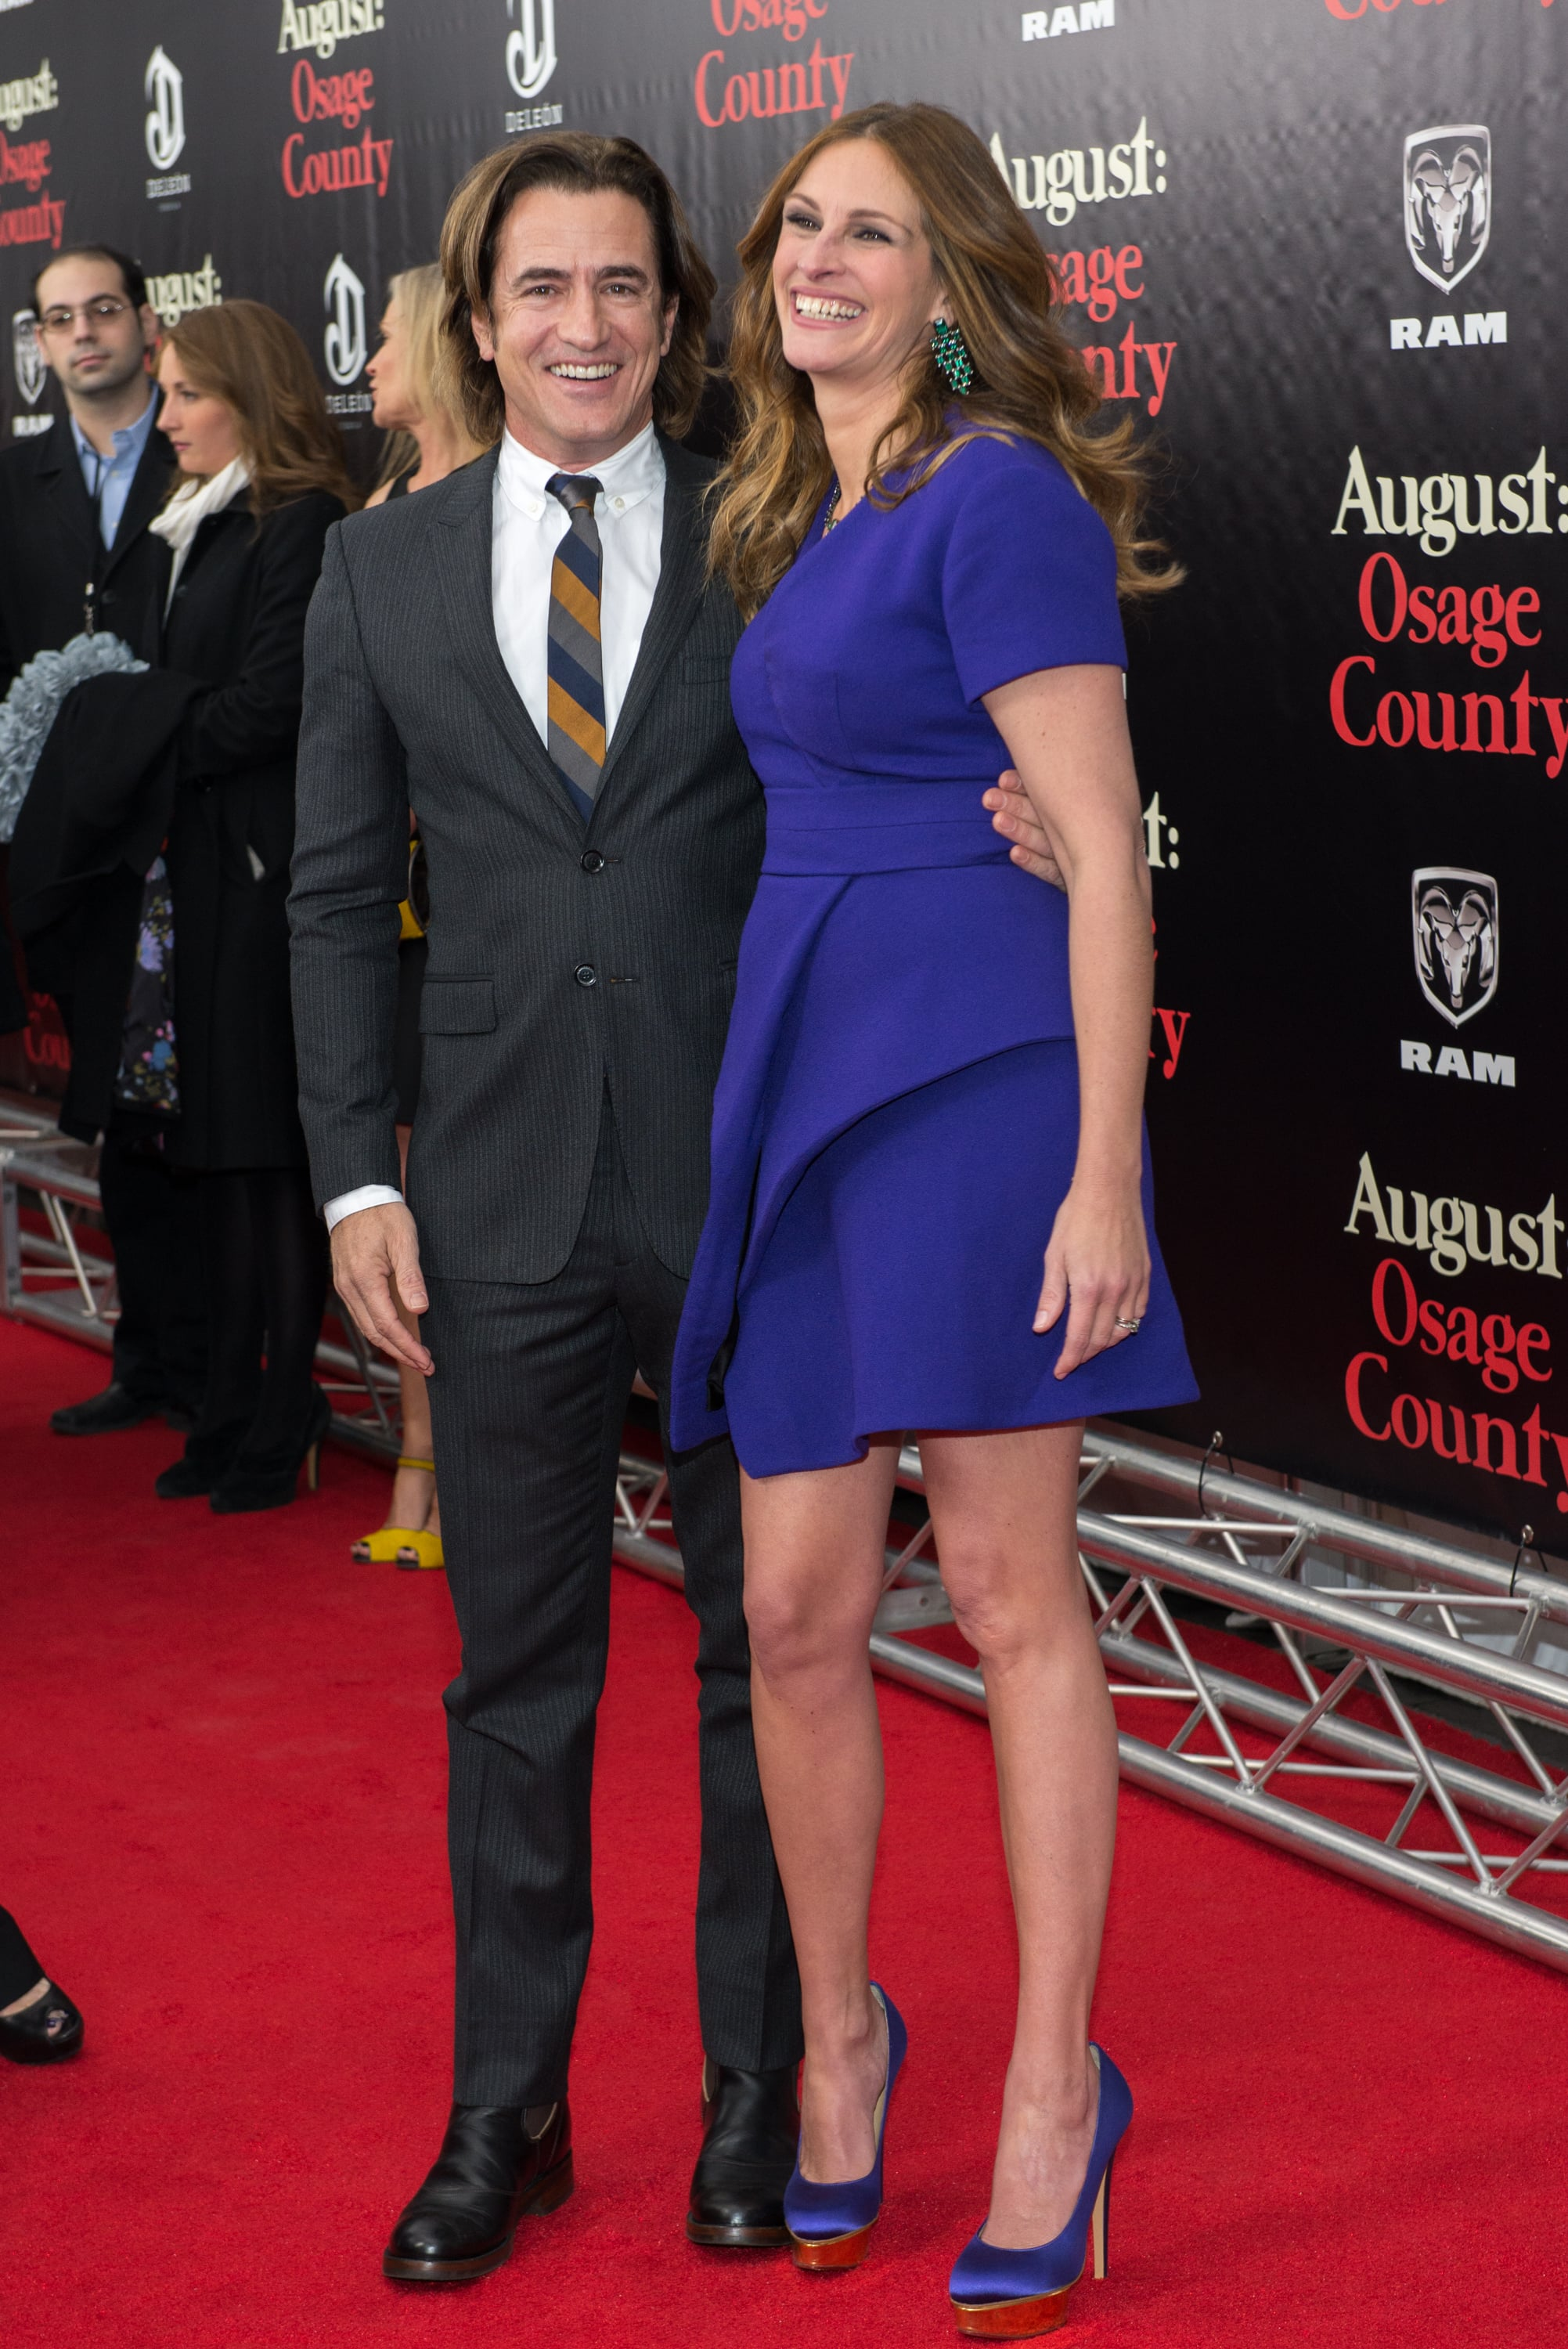 Julia Robert and Dermot Mulroney shared a giggle on the red carpet at the premiere of August: Osage County in NYC.